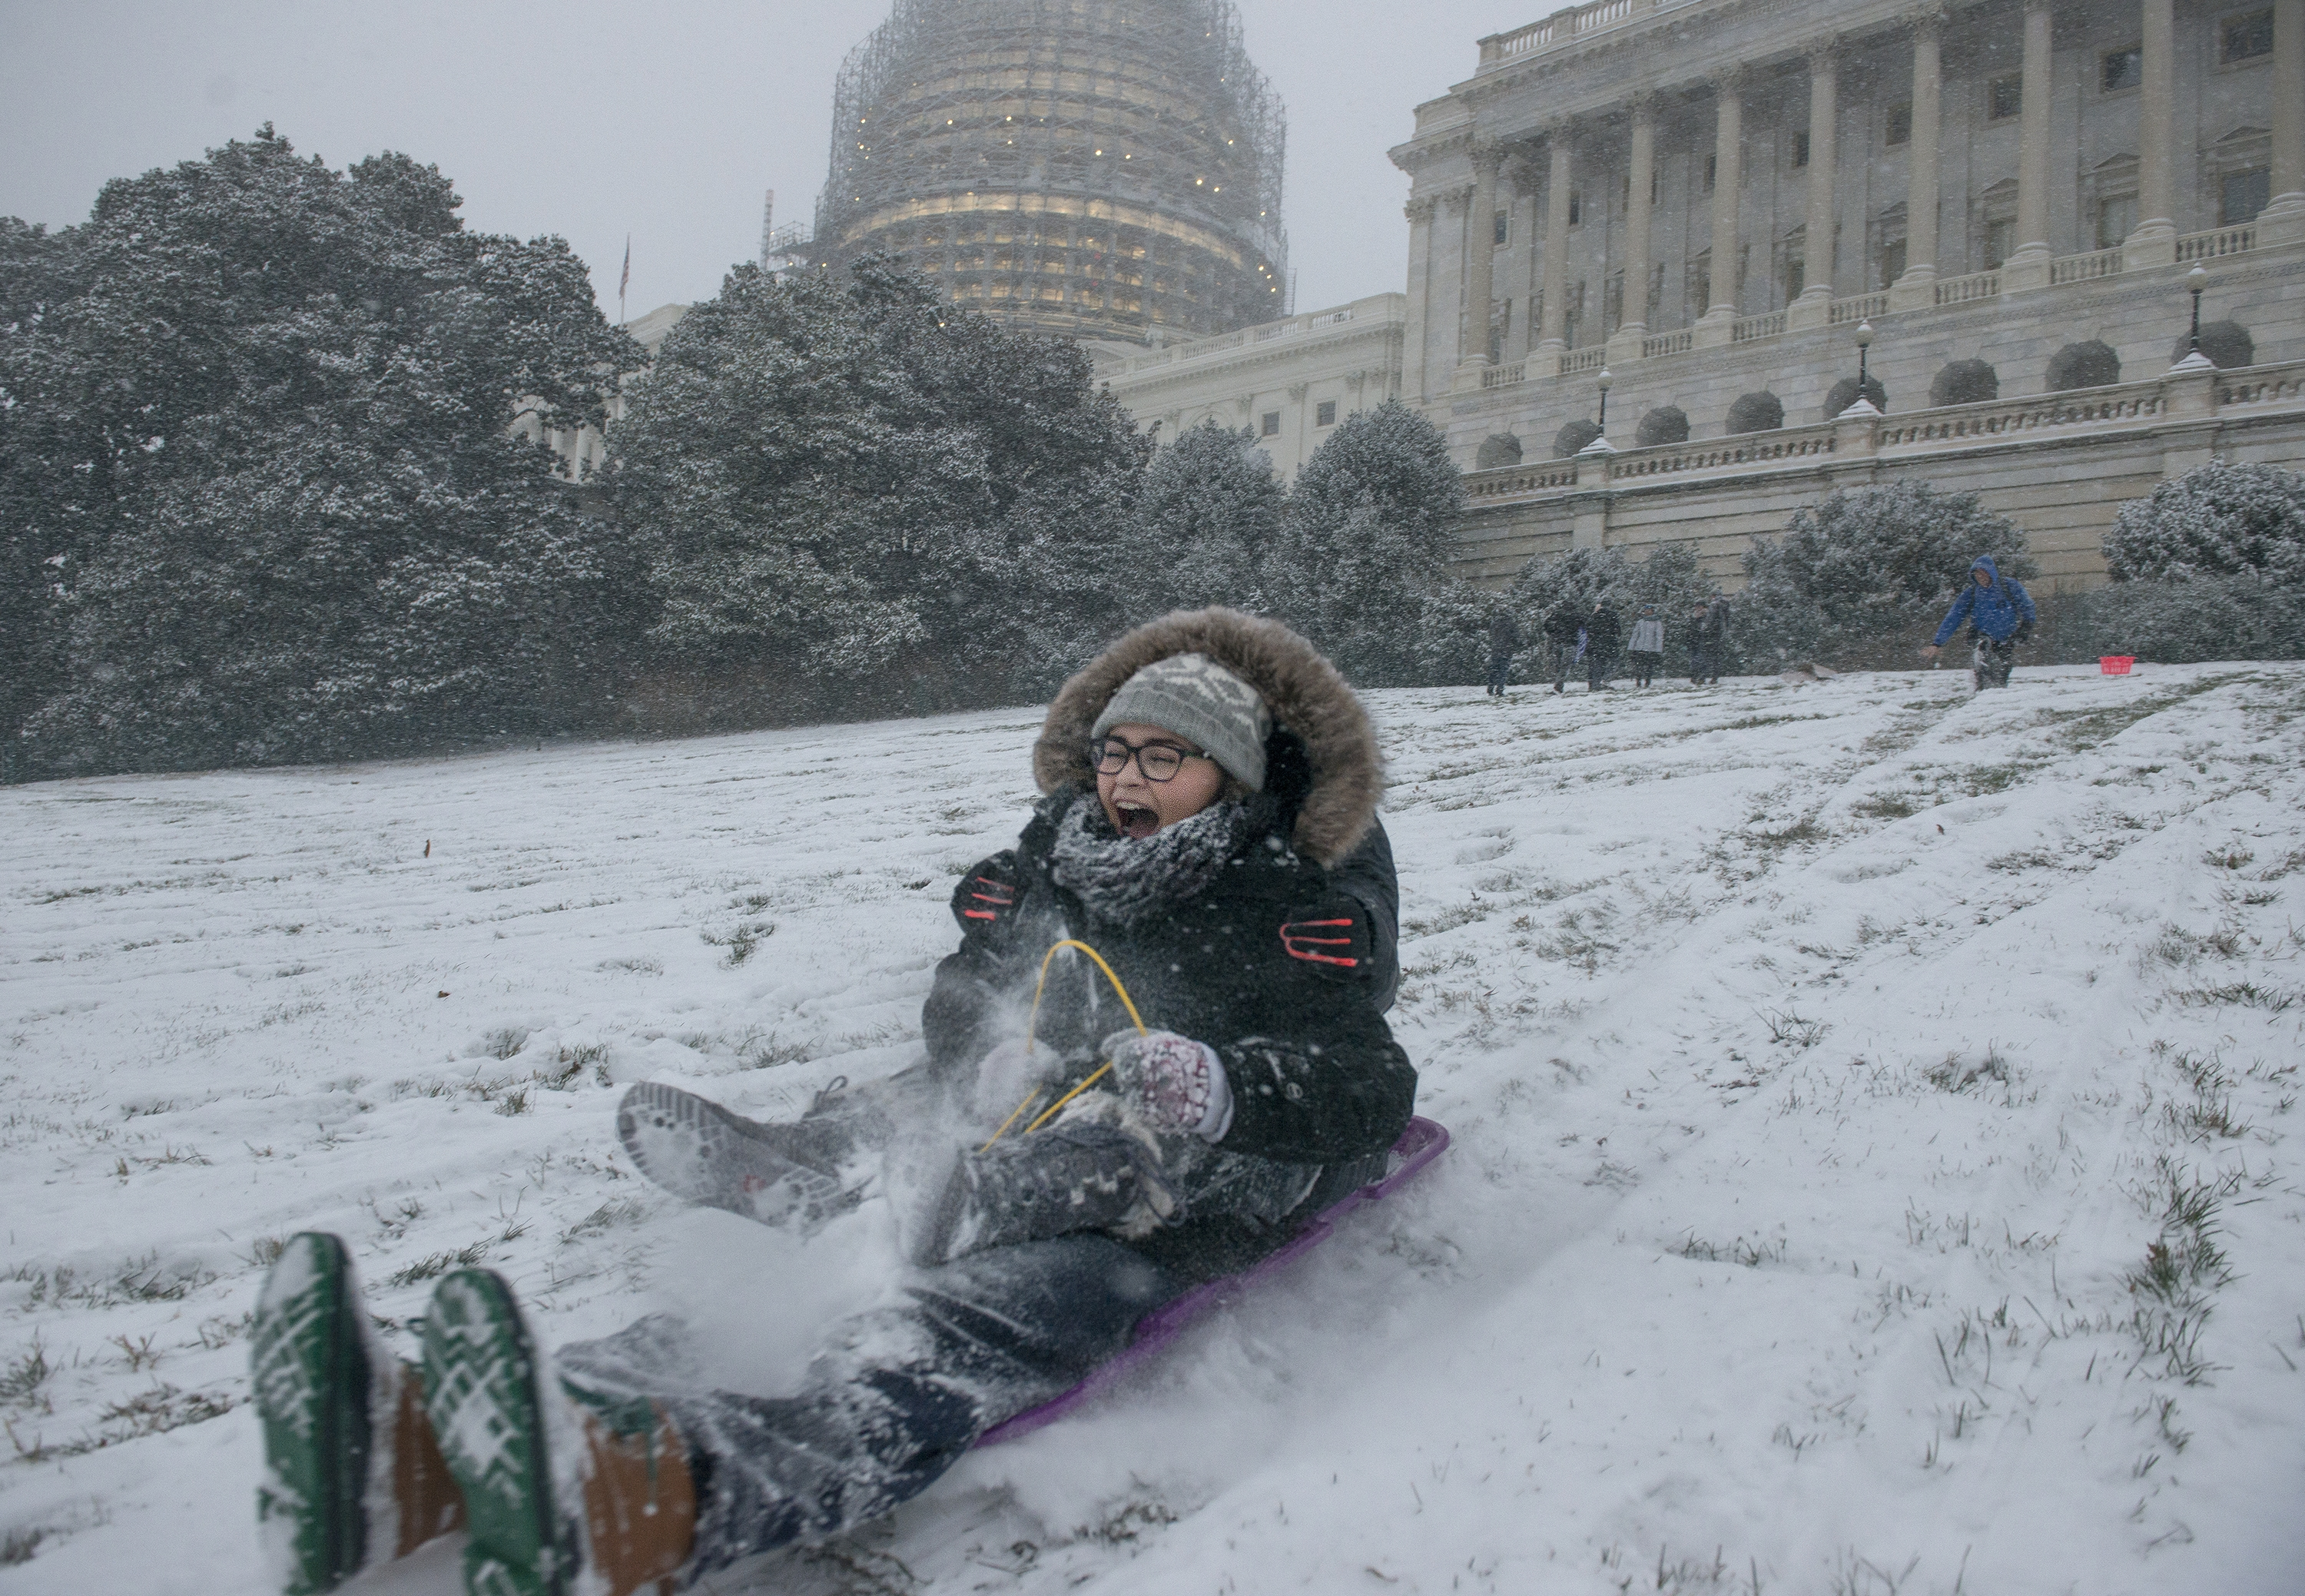 Sled riders hit the hill Friday at the U.S. Capitol in Washington, D.C. Winter storm Jonas was expected to bring up to 2 feet of snow in some areas.  The federal government shut down at noon Friday in anticipation of the event.